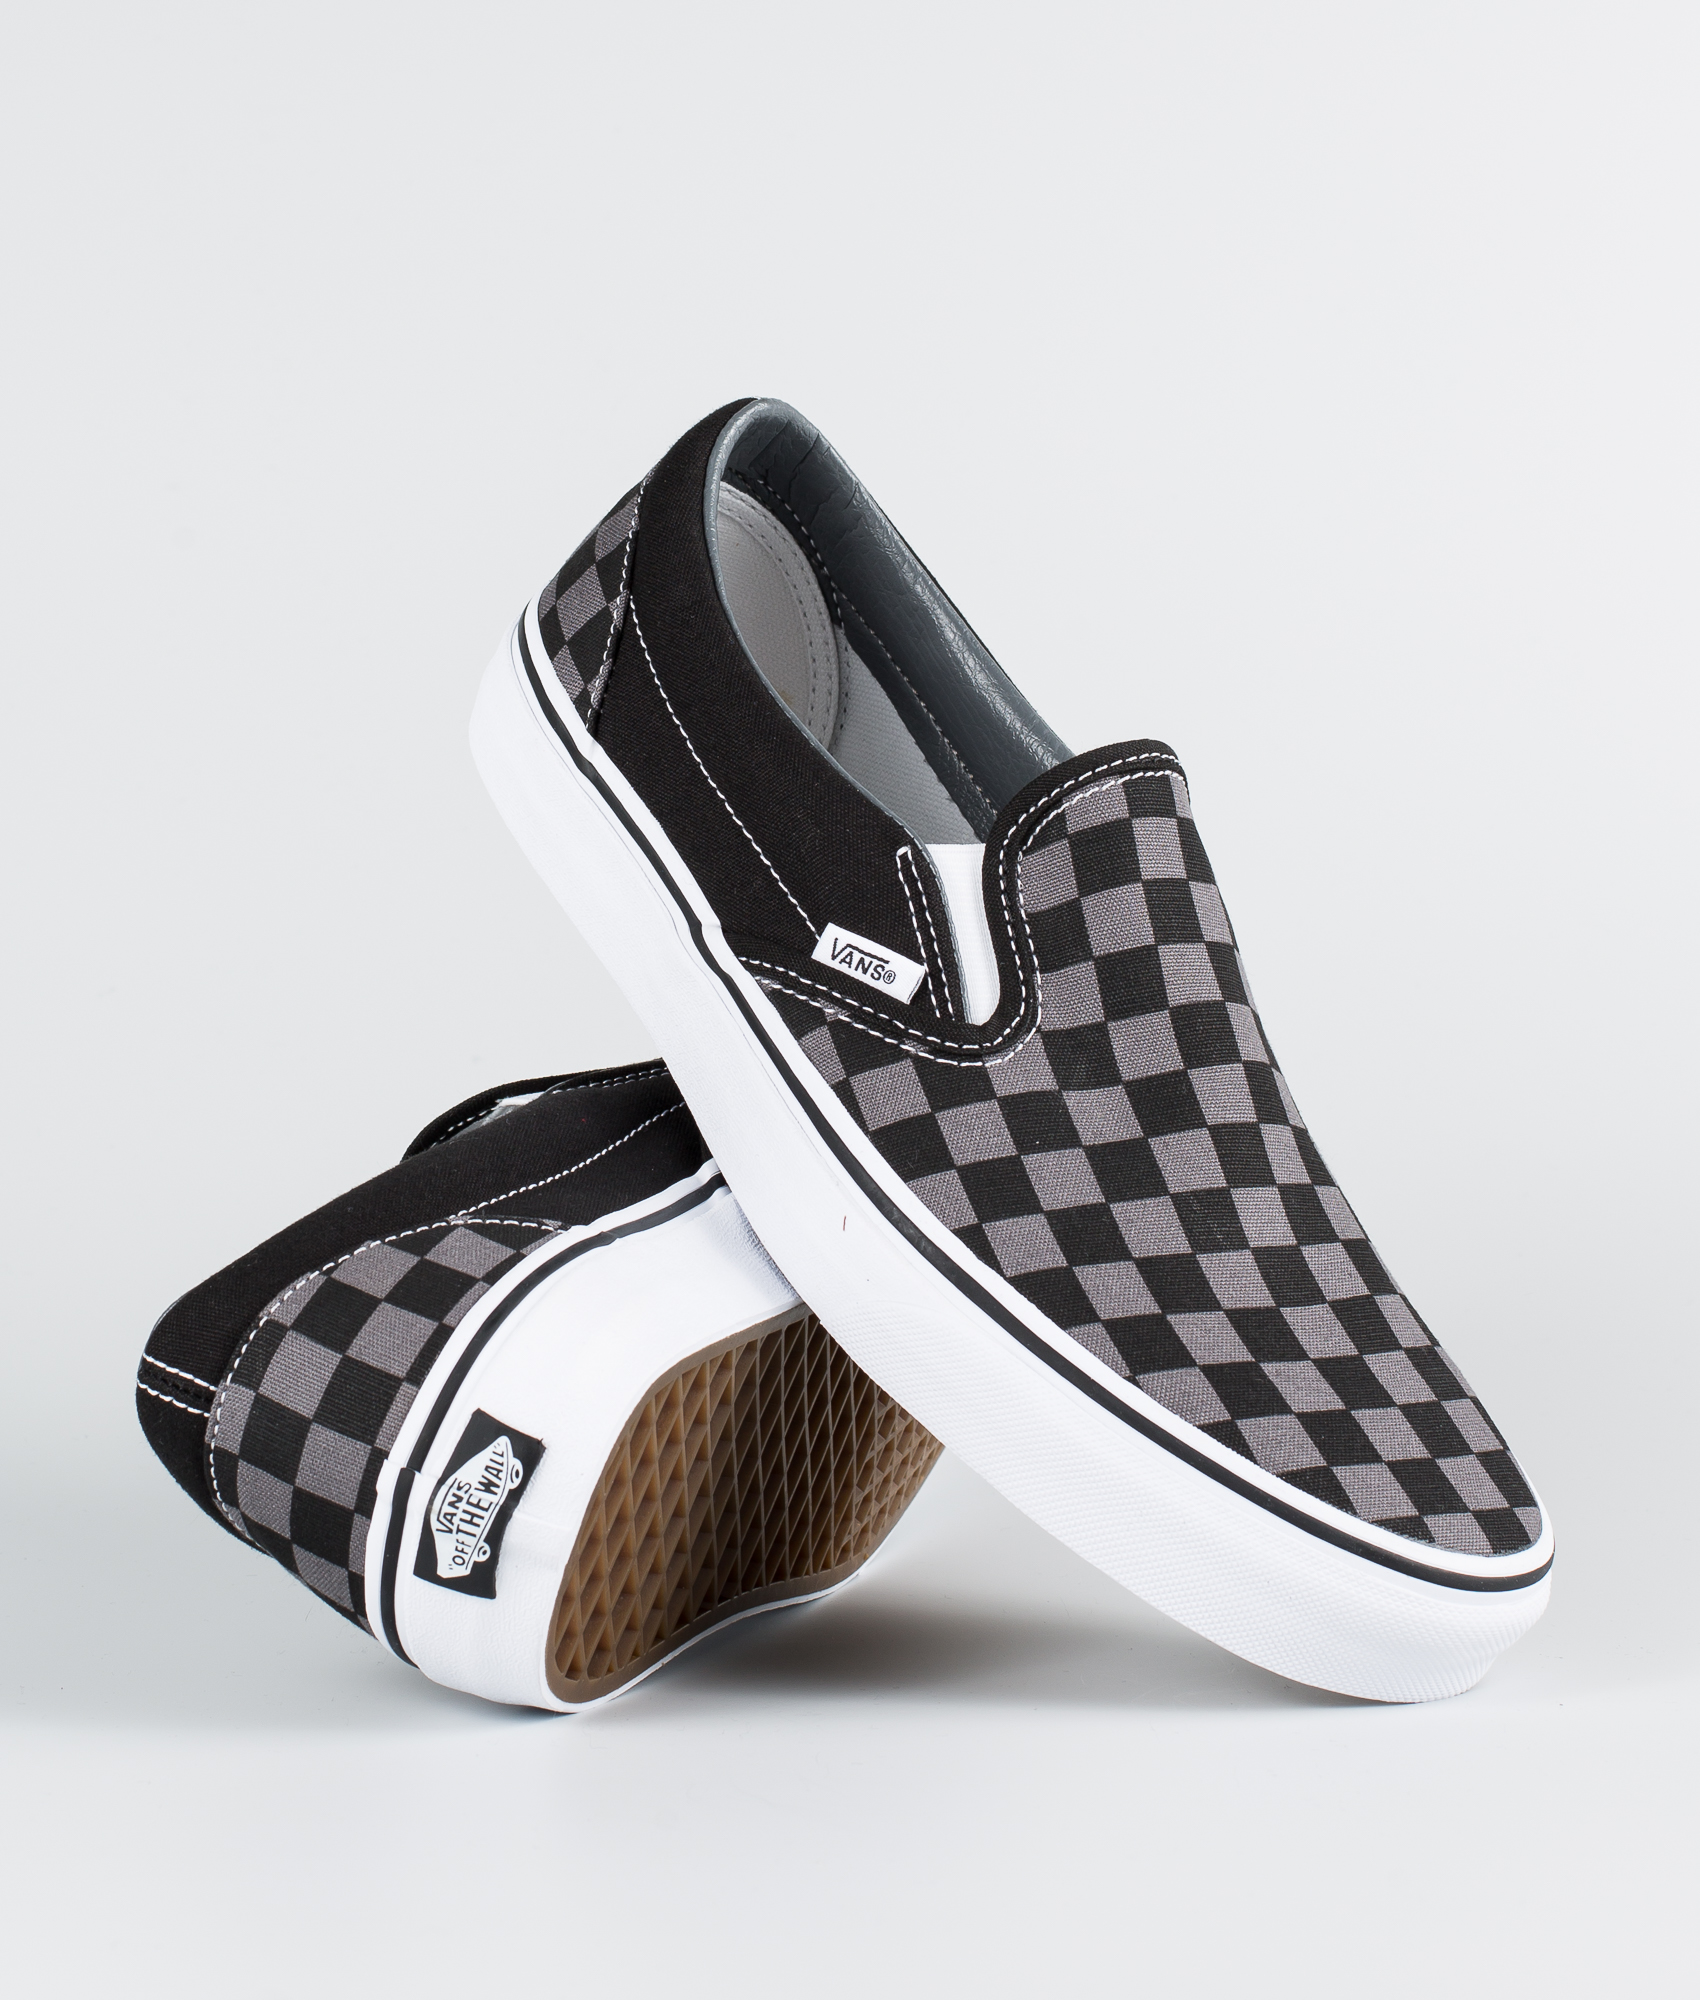 ee15249be40 Vans Classic Slip-On Shoes Black Pewter Checkerboard - Ridestore.com